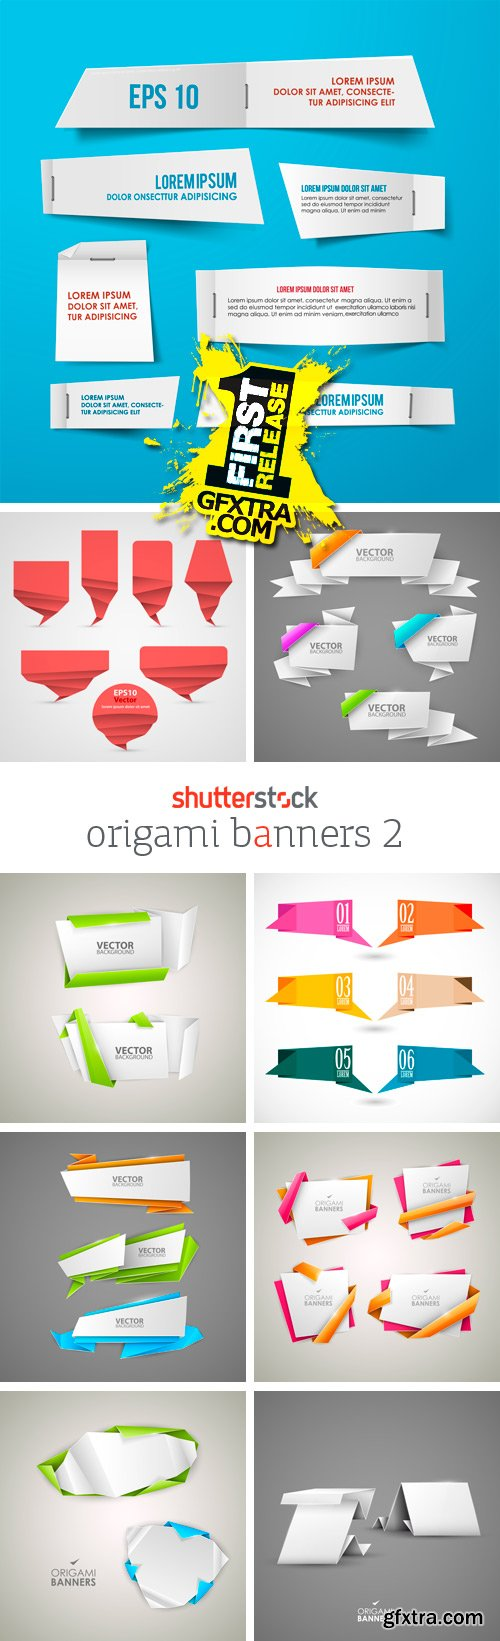 Amazing SS - Origami Banners 2, 25xEPS